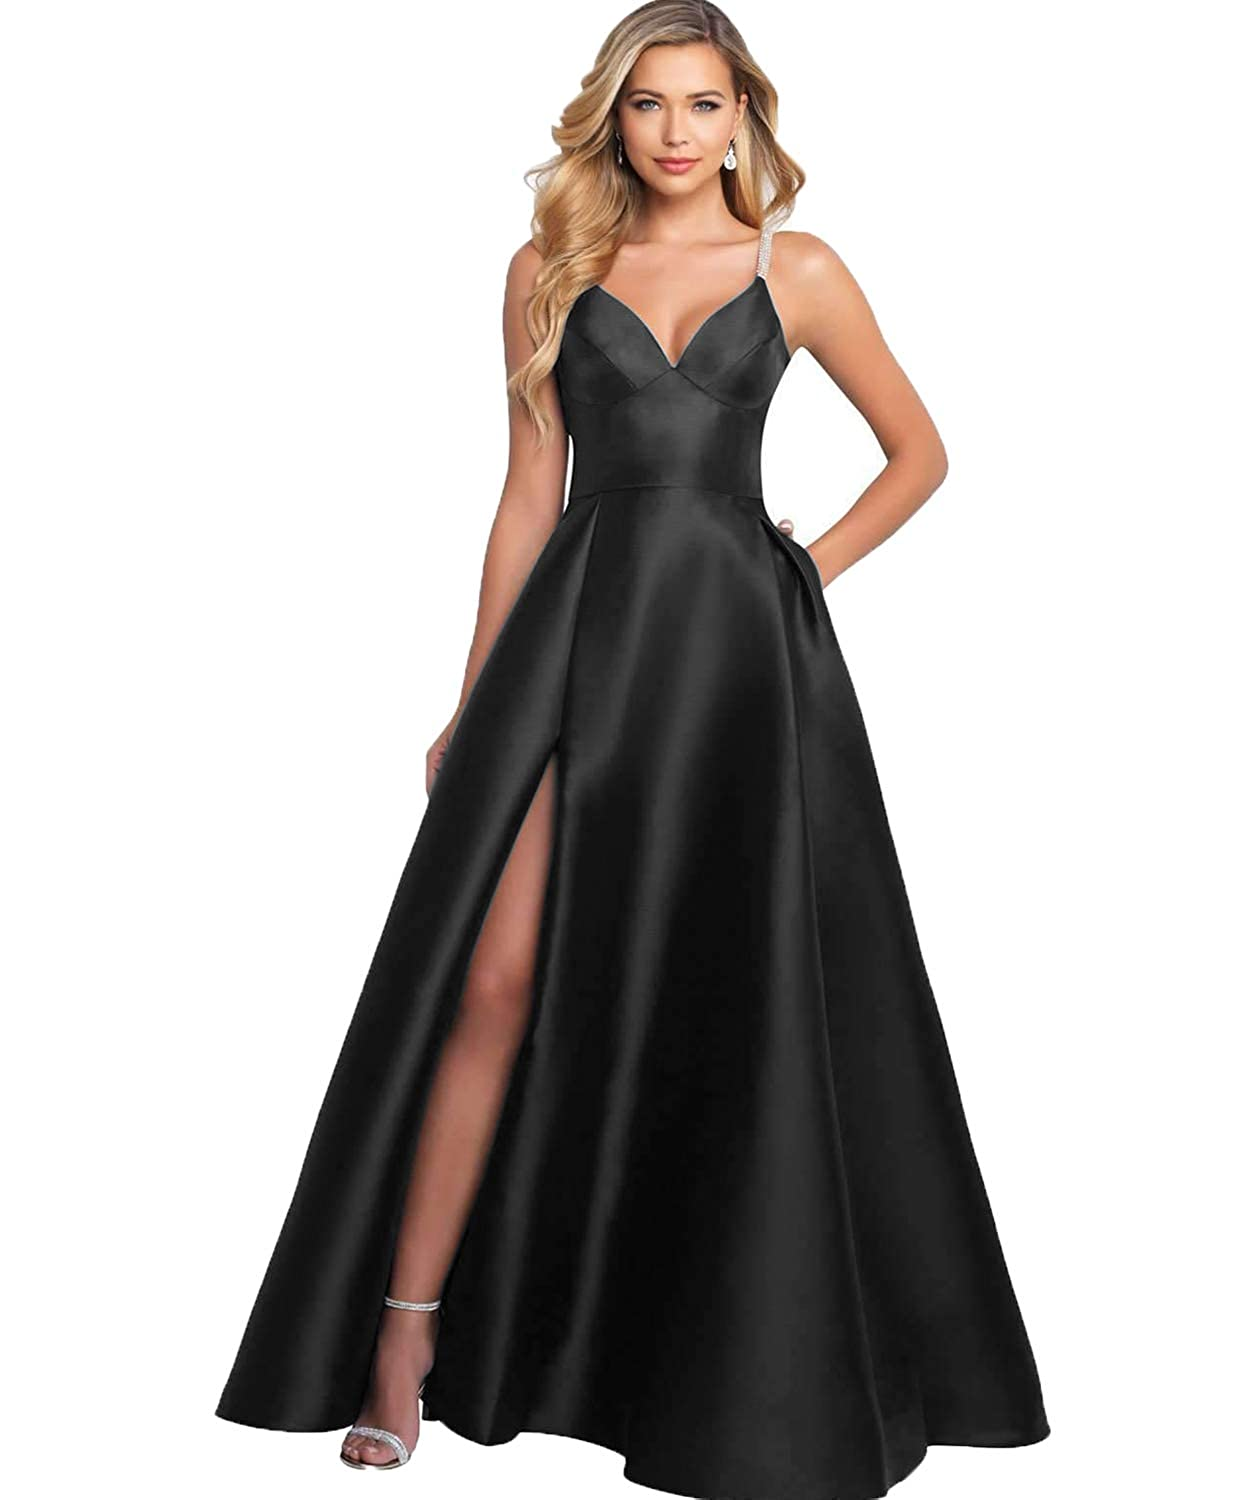 0b1d935bf3 YGSY Women s Deep V Neck Spaghetti Straps Beaded Slit Satin A-line Evening  Prom Dress Long Formal Party Gown with Pockets at Amazon Women s Clothing  store